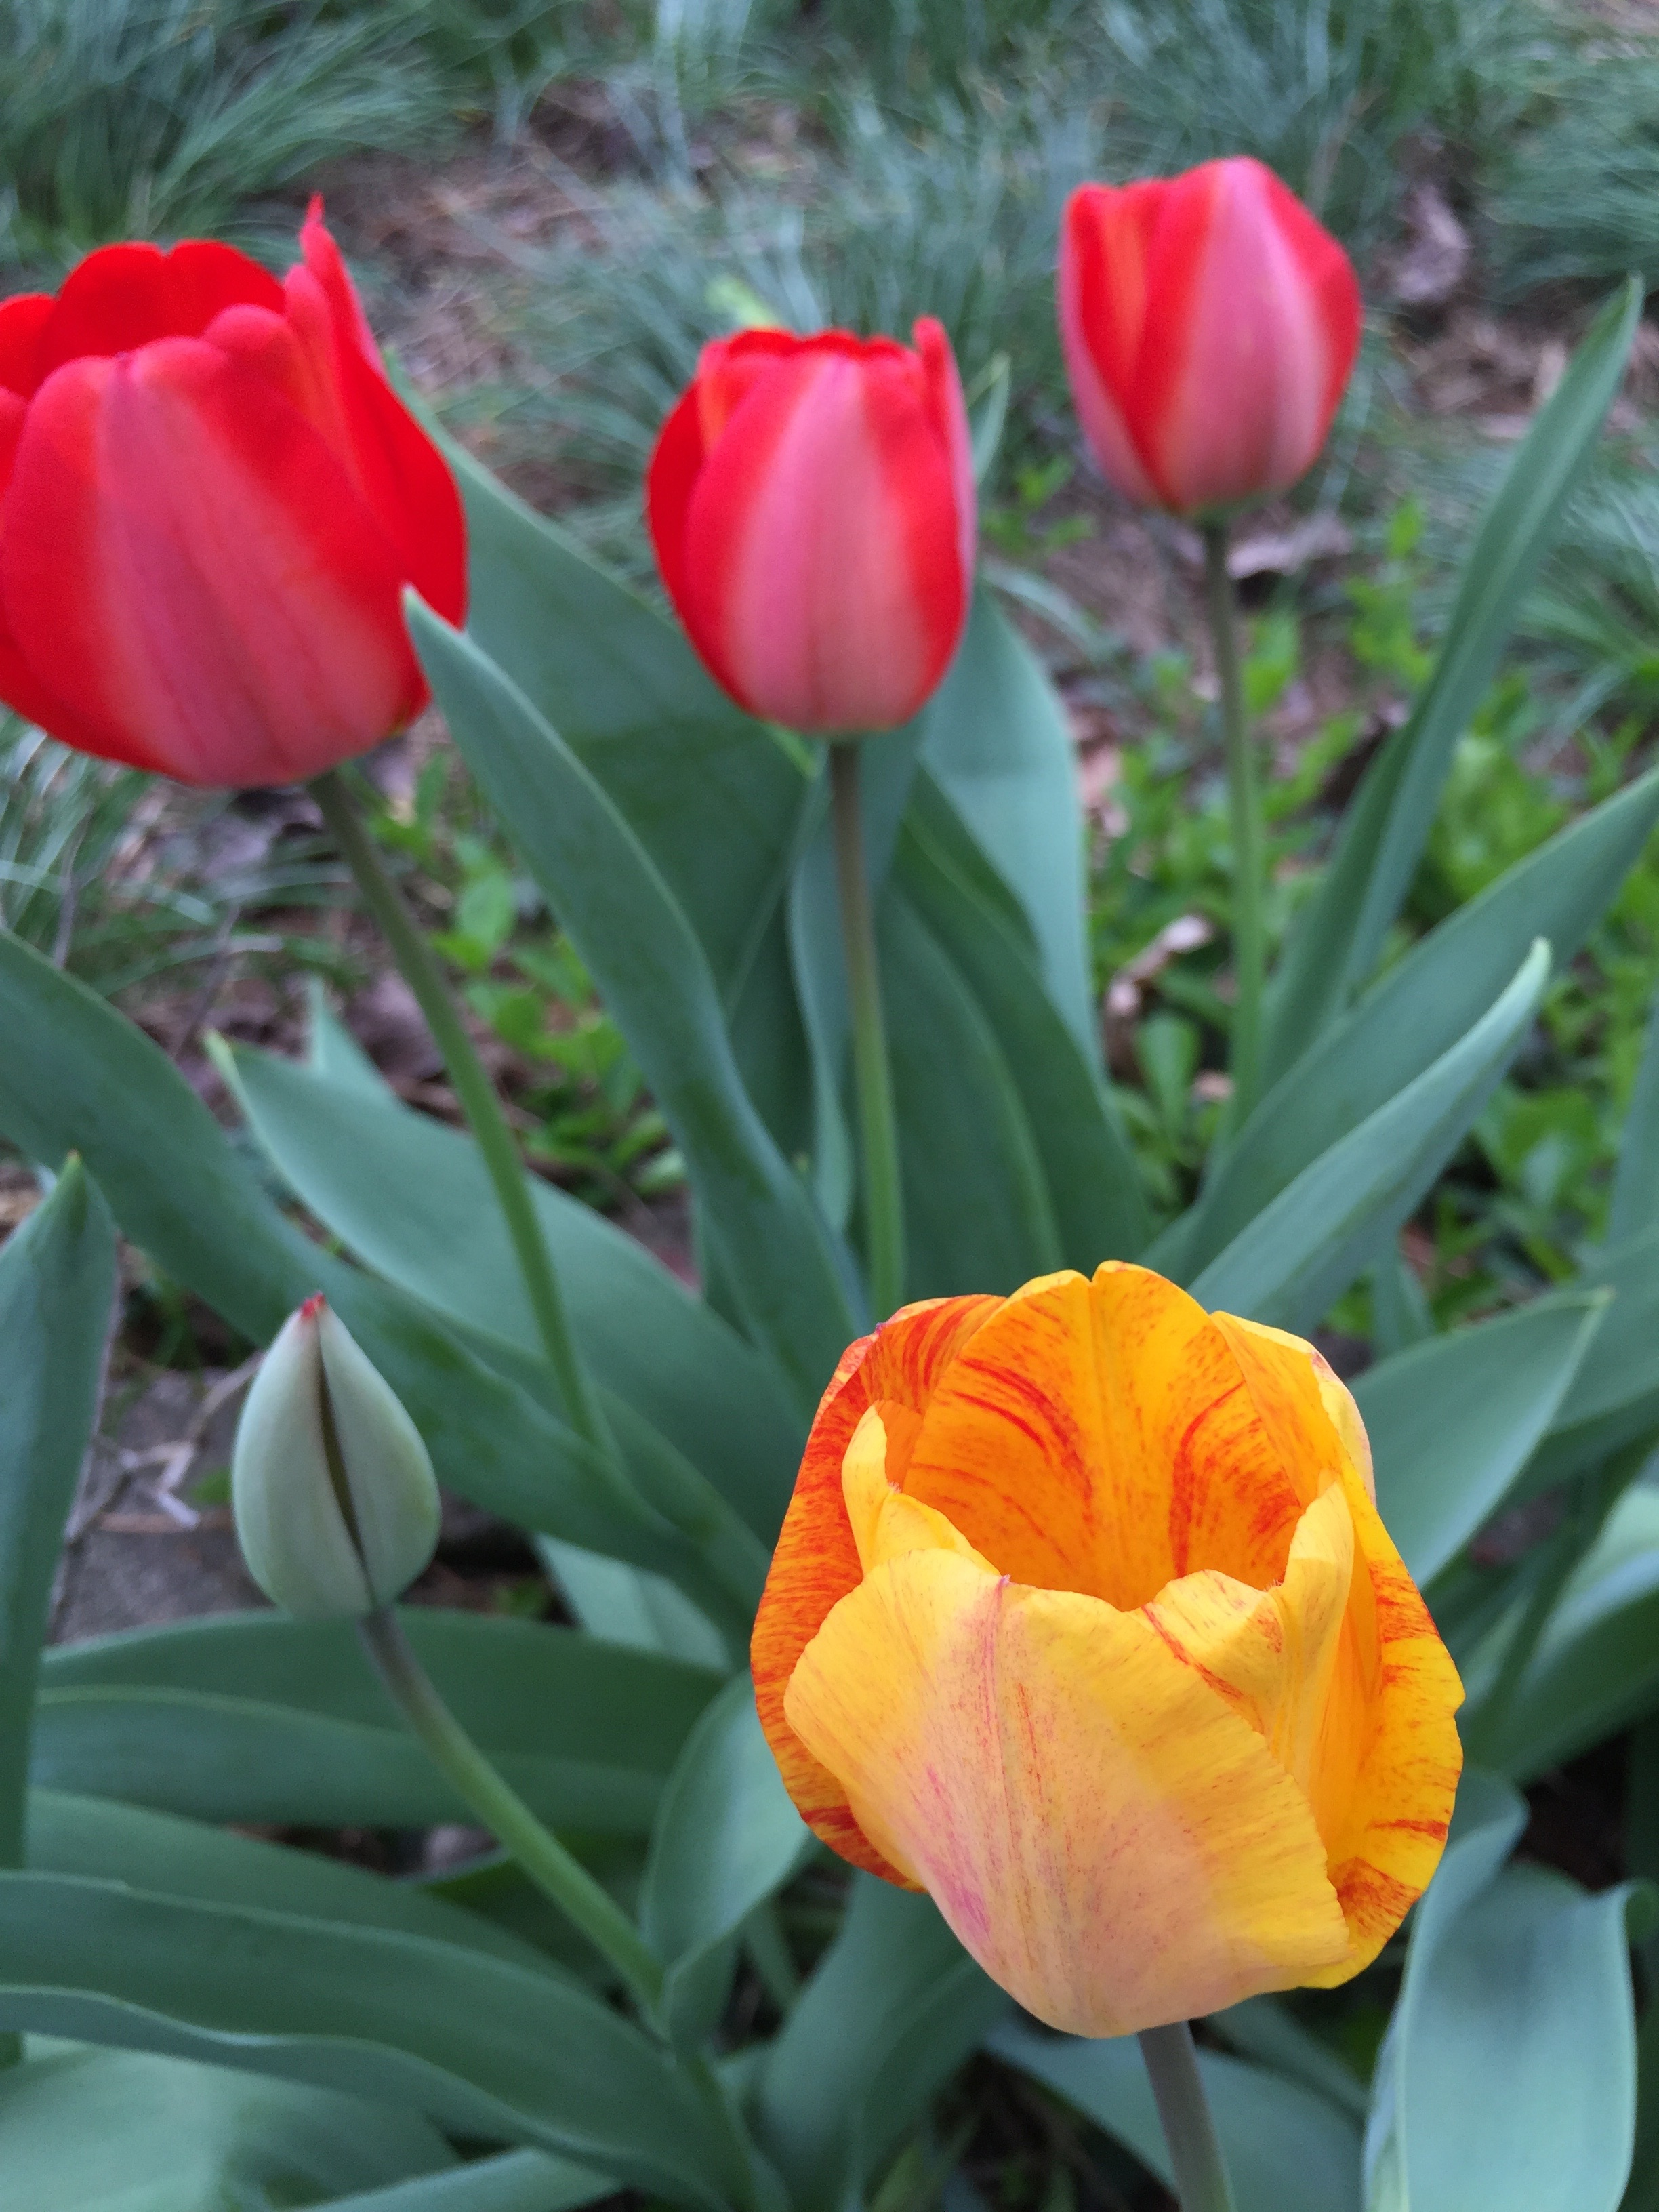 backyard_tulips_2016